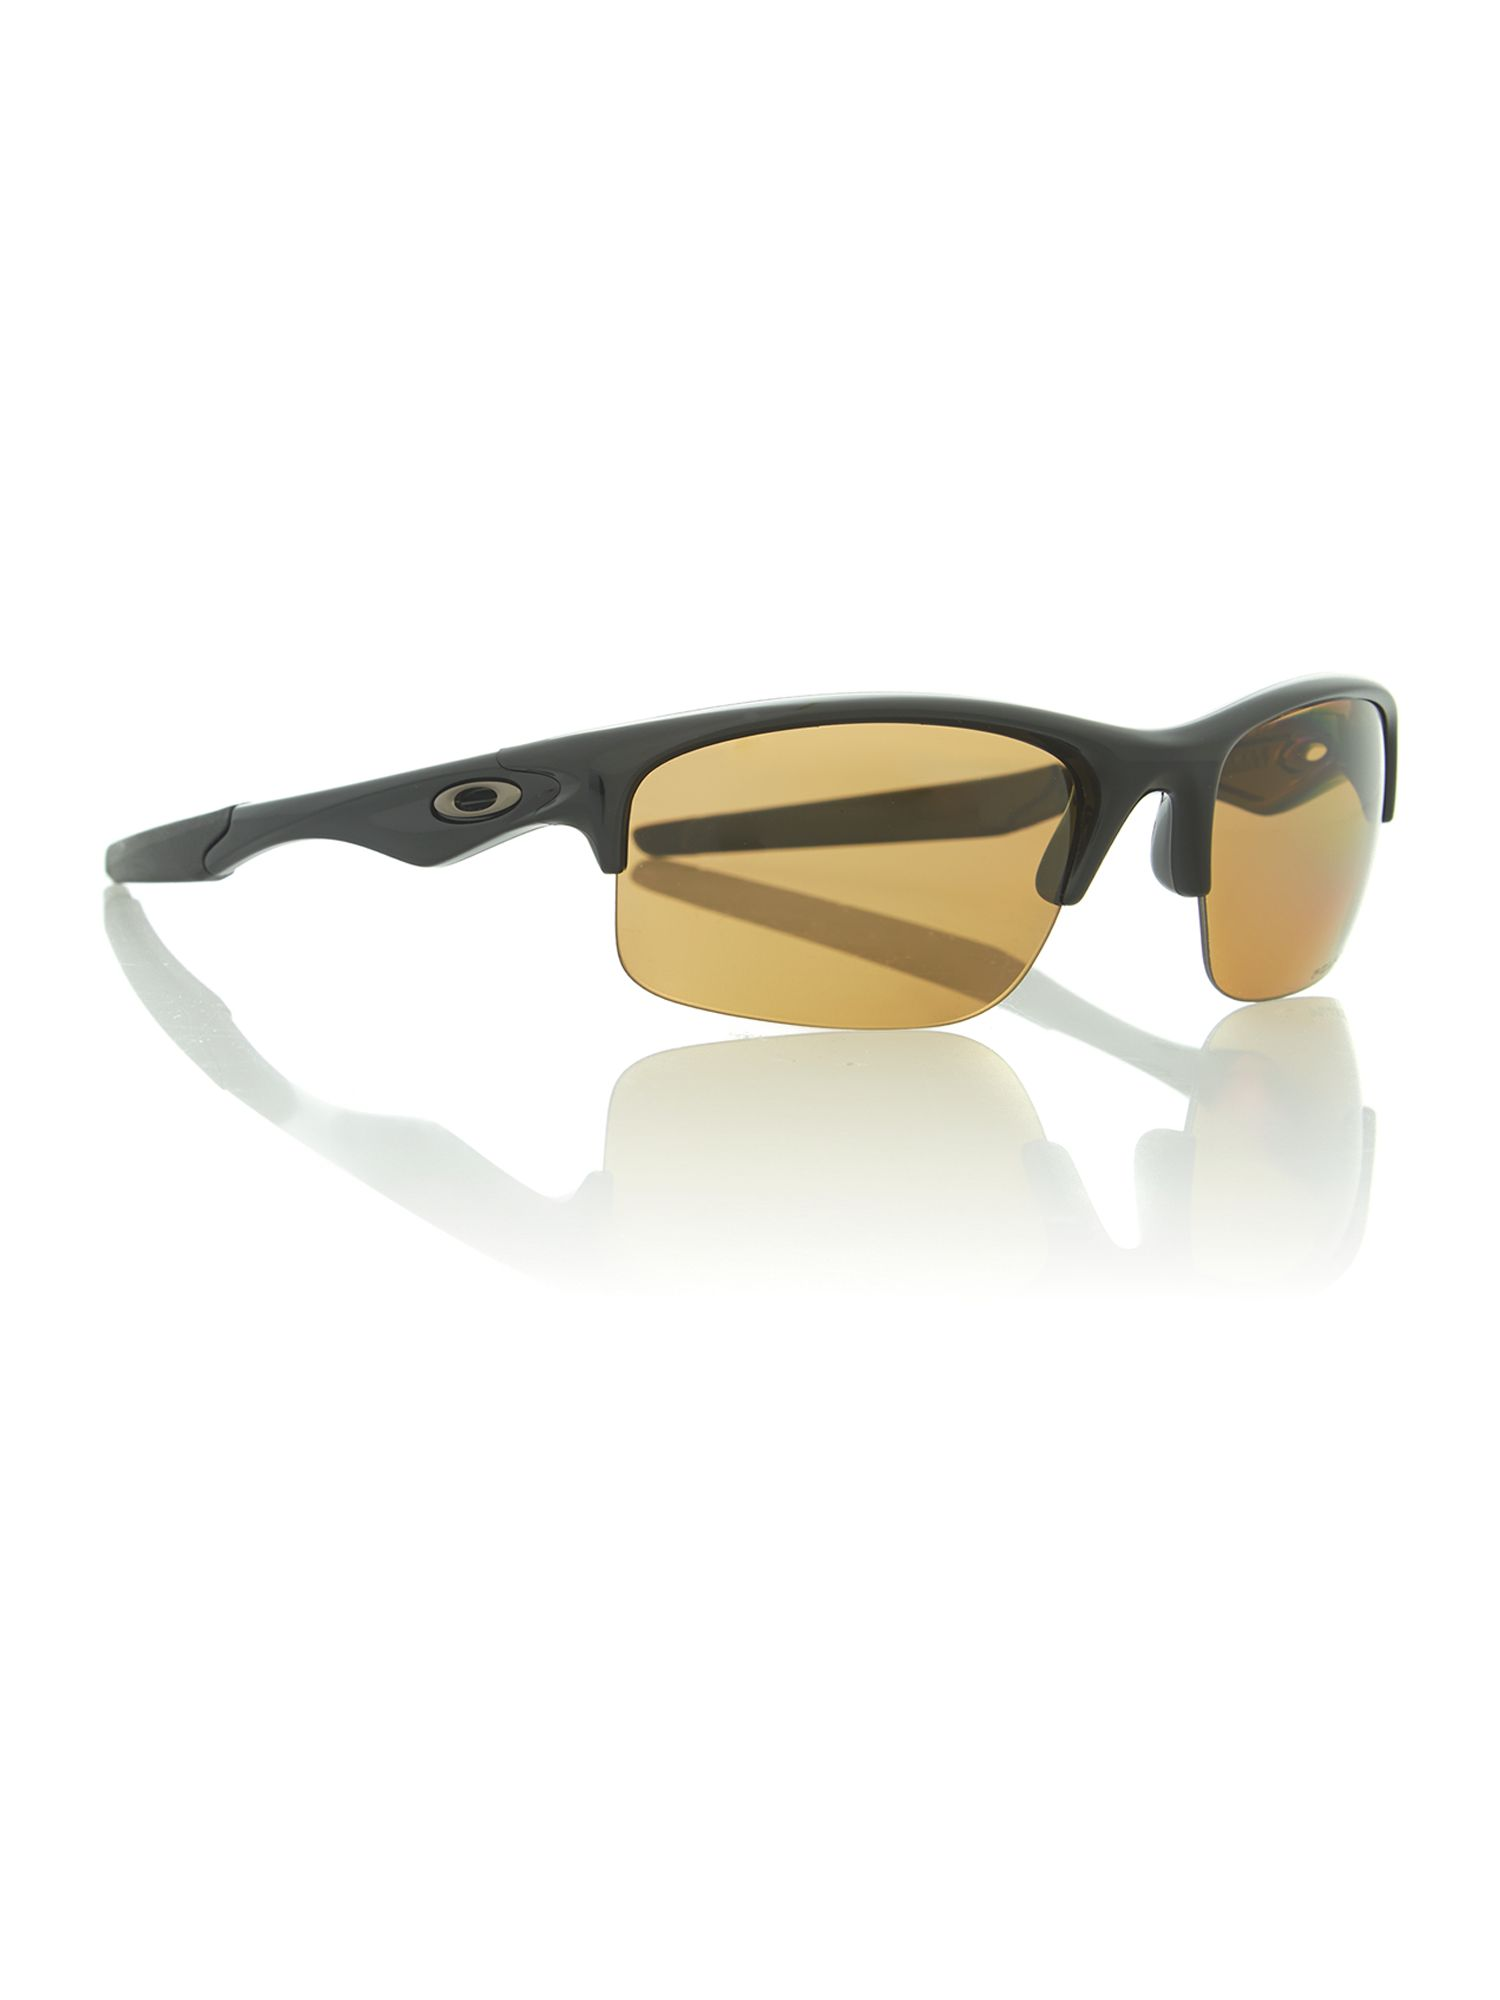 Mens Polished Black Bottle Rocket Sunglasses